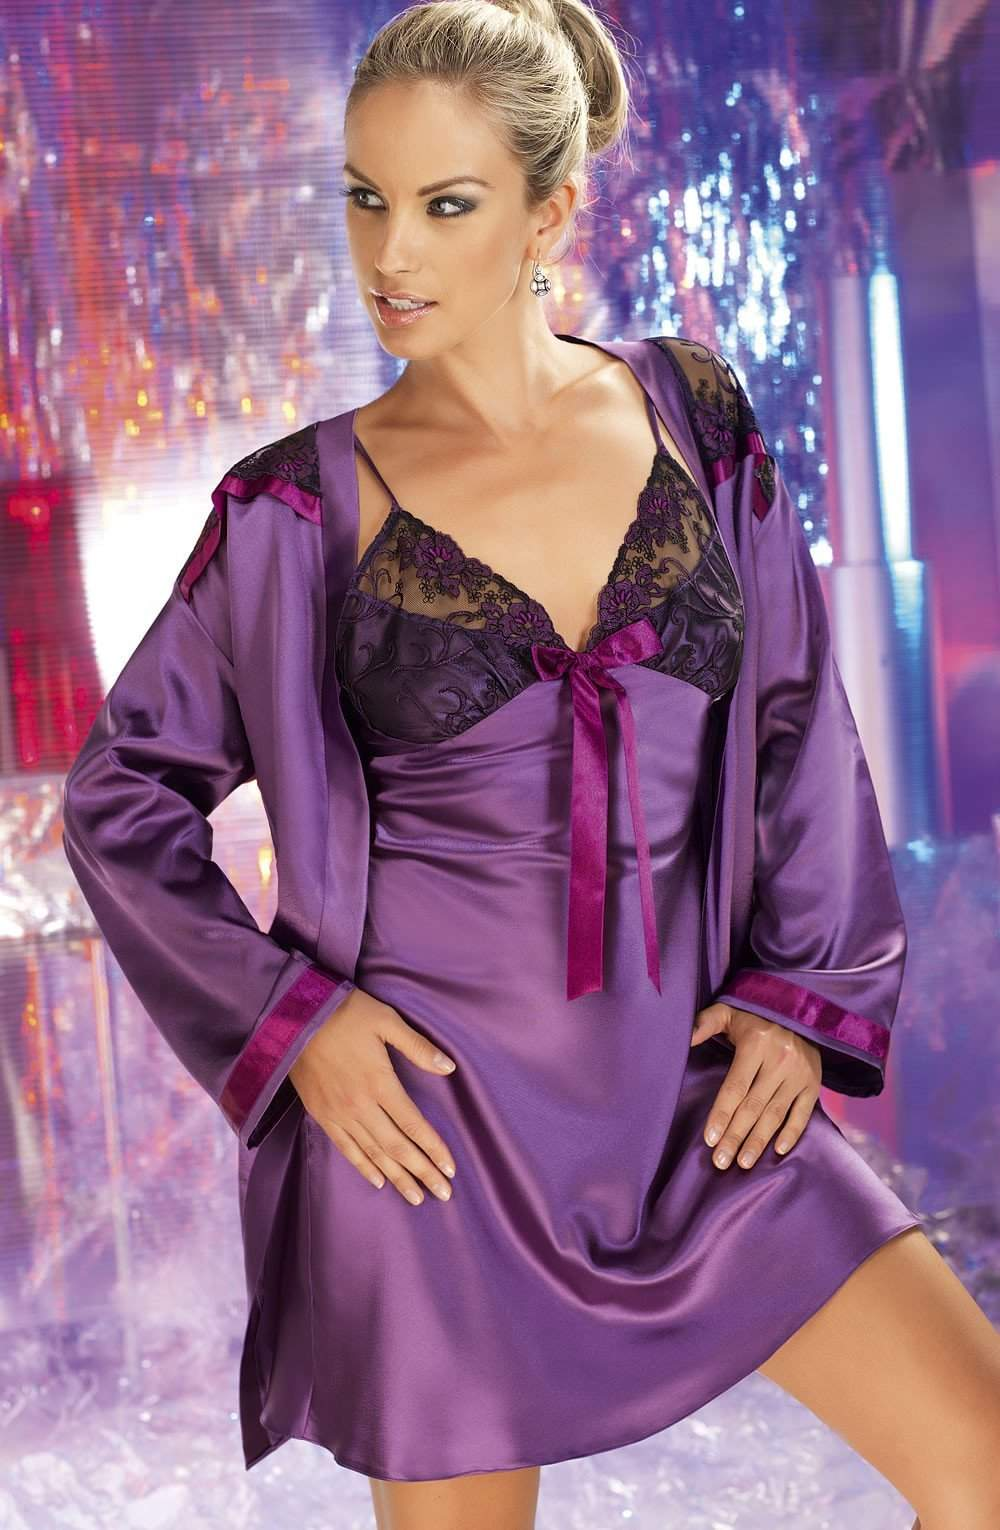 Tiffany Dressing Gown by Irall - Irall - Katys Boutique Lingerie USA